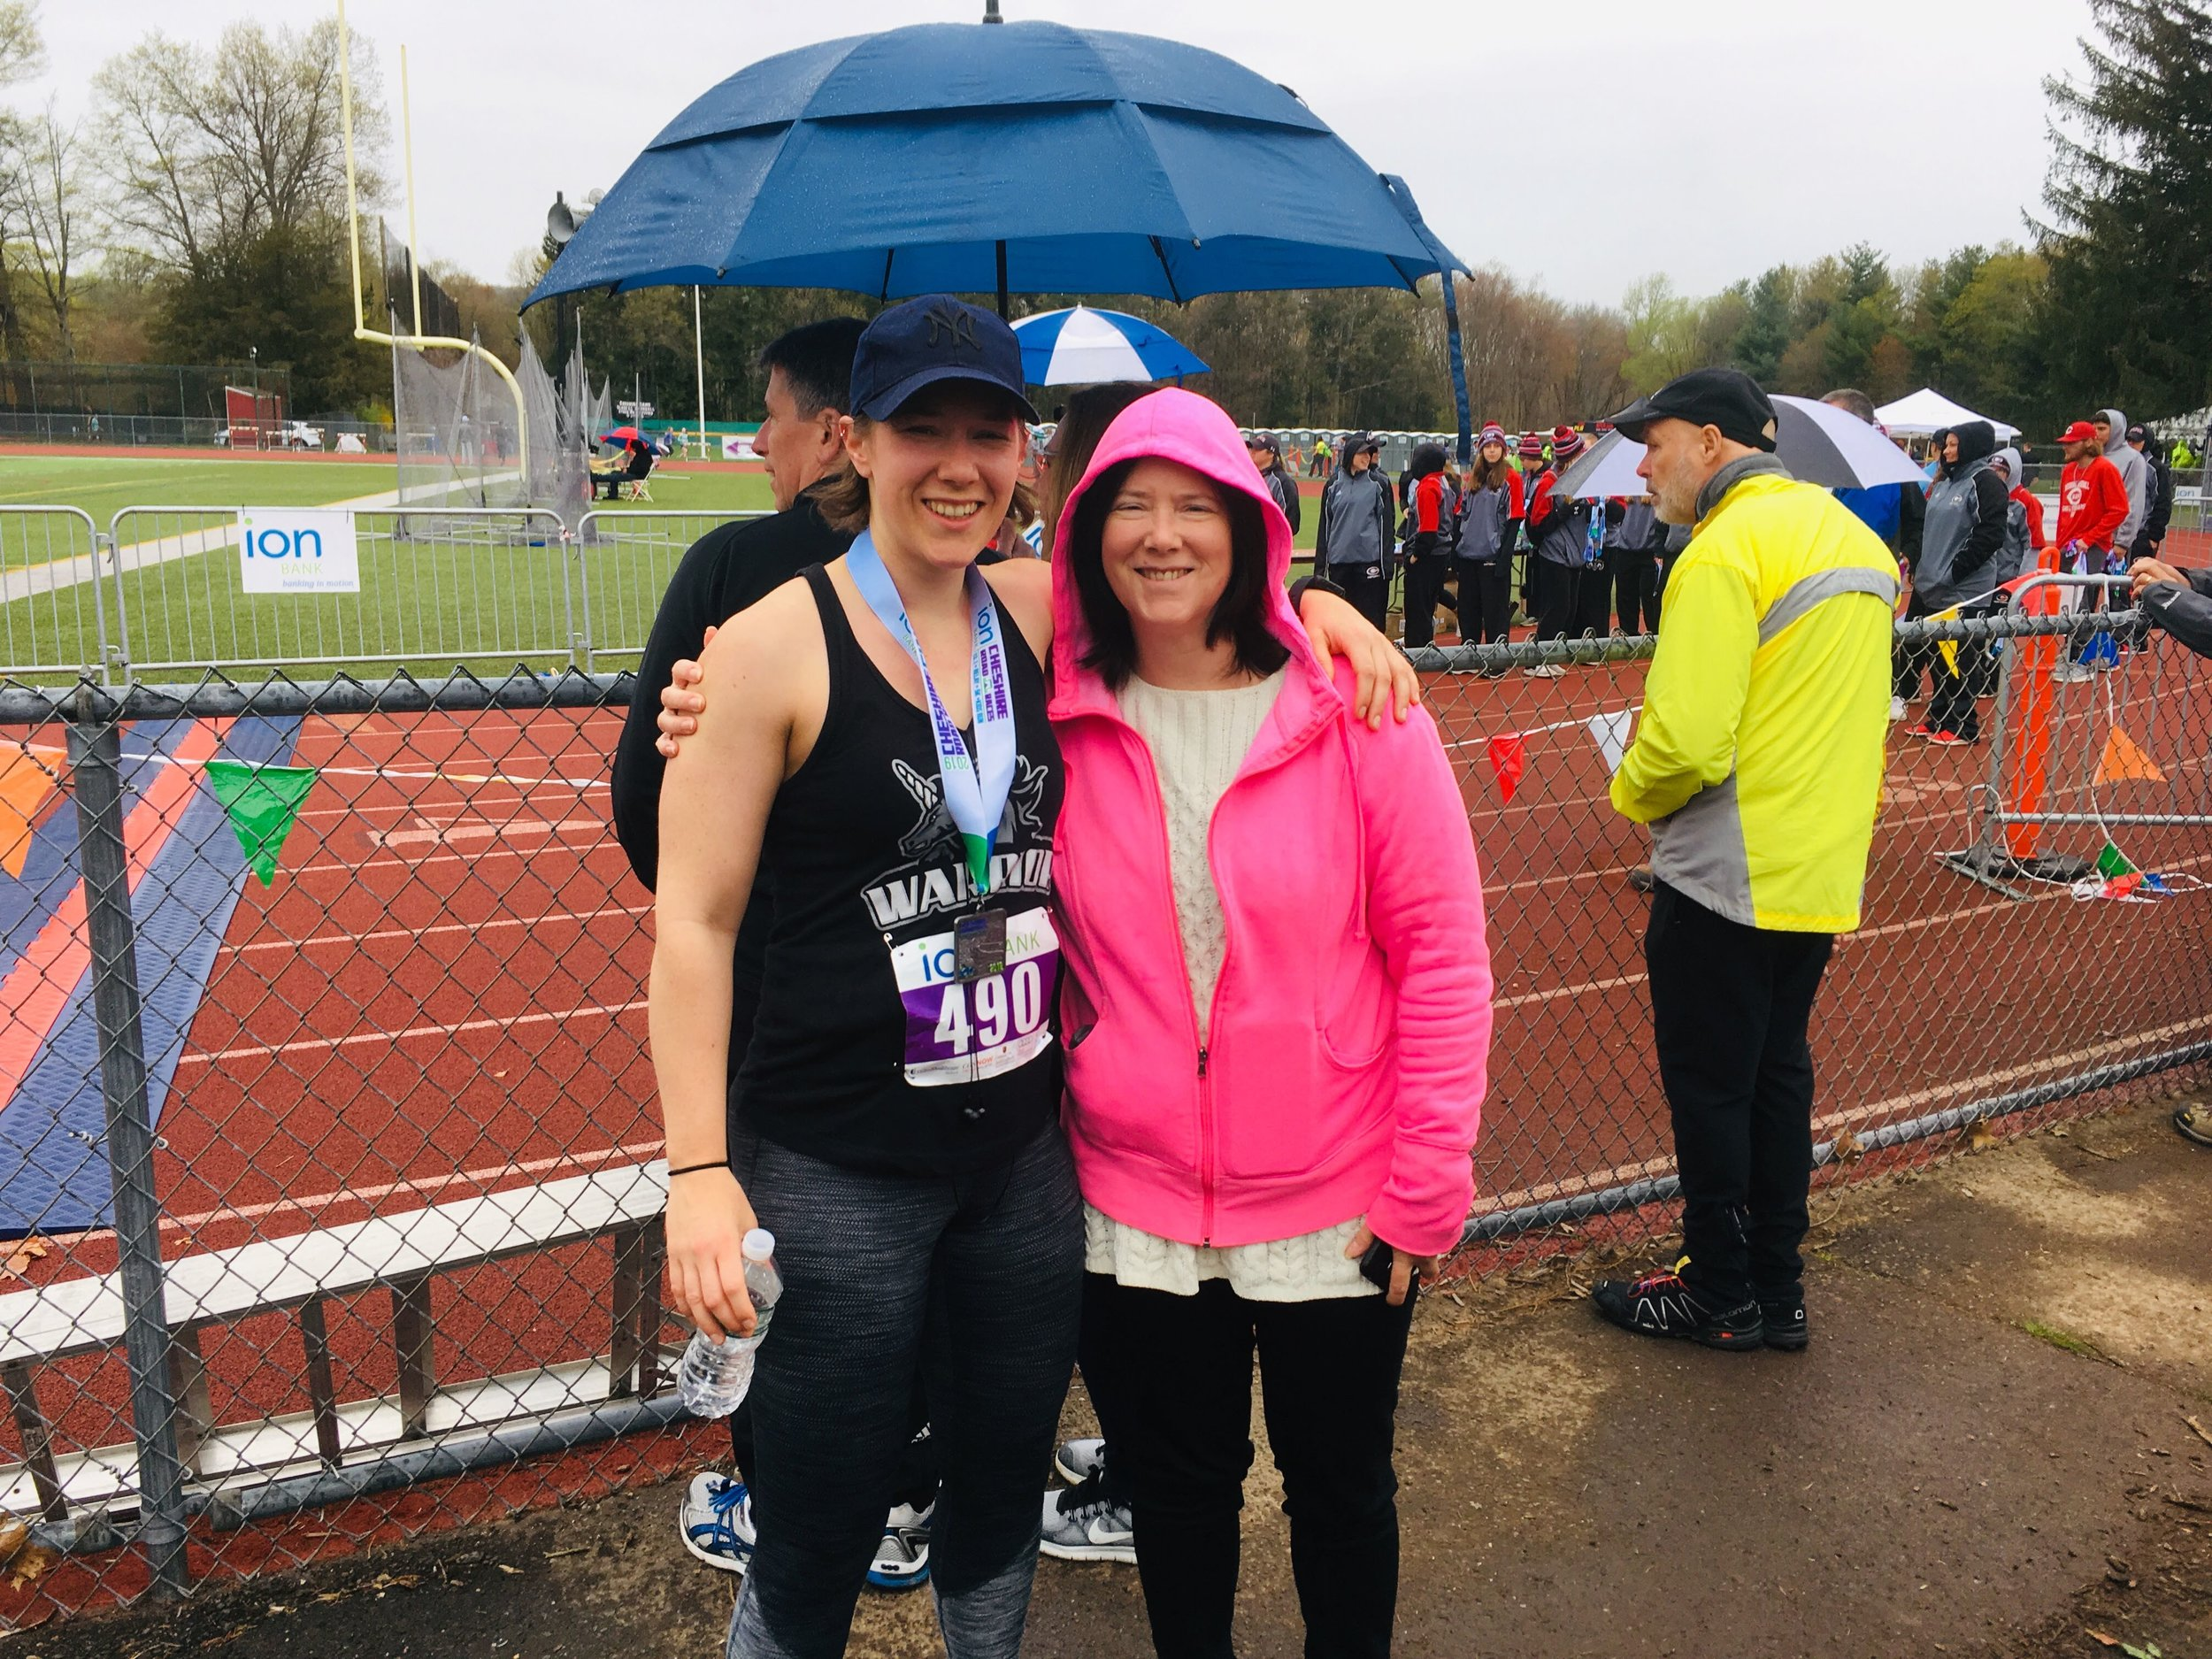 Congratulations on finishing your first half marathon, Leslie!  It has been so inspiring to see your train hard and train smart… and to follow through on your commitment and goal!  Incredible work!